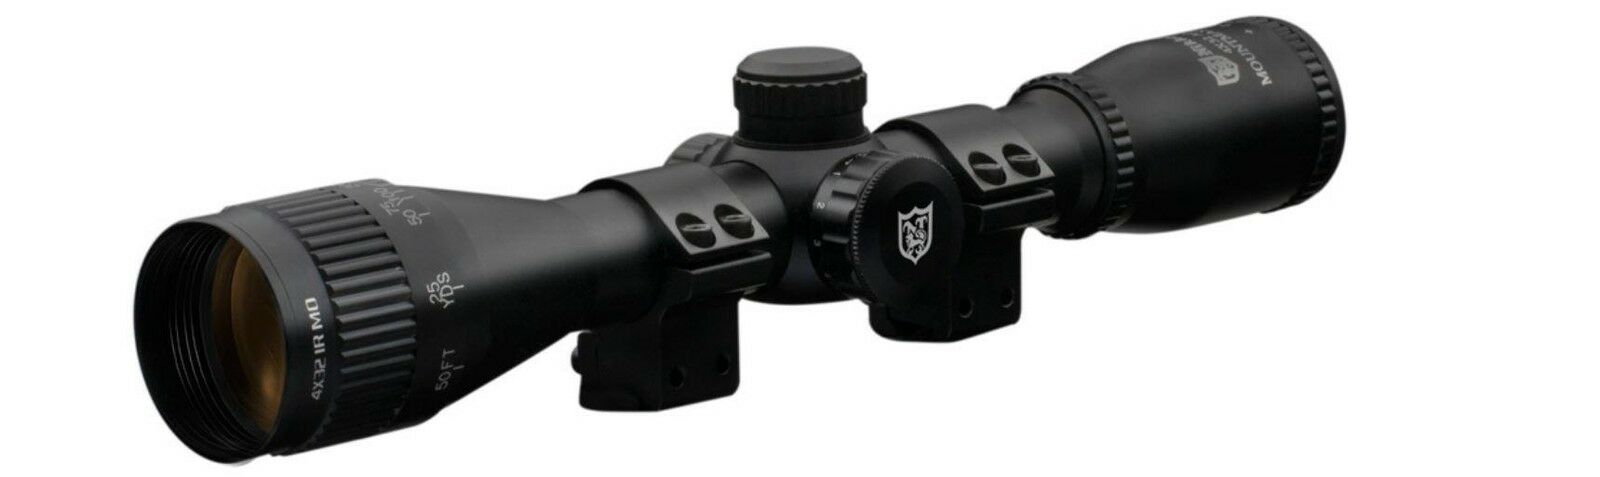 Nikko Stirling Stirling Nikko Mountmaster 3-9x40 AO IR Half Mil Dot Rifle Scope + Mount Rings c67fb0